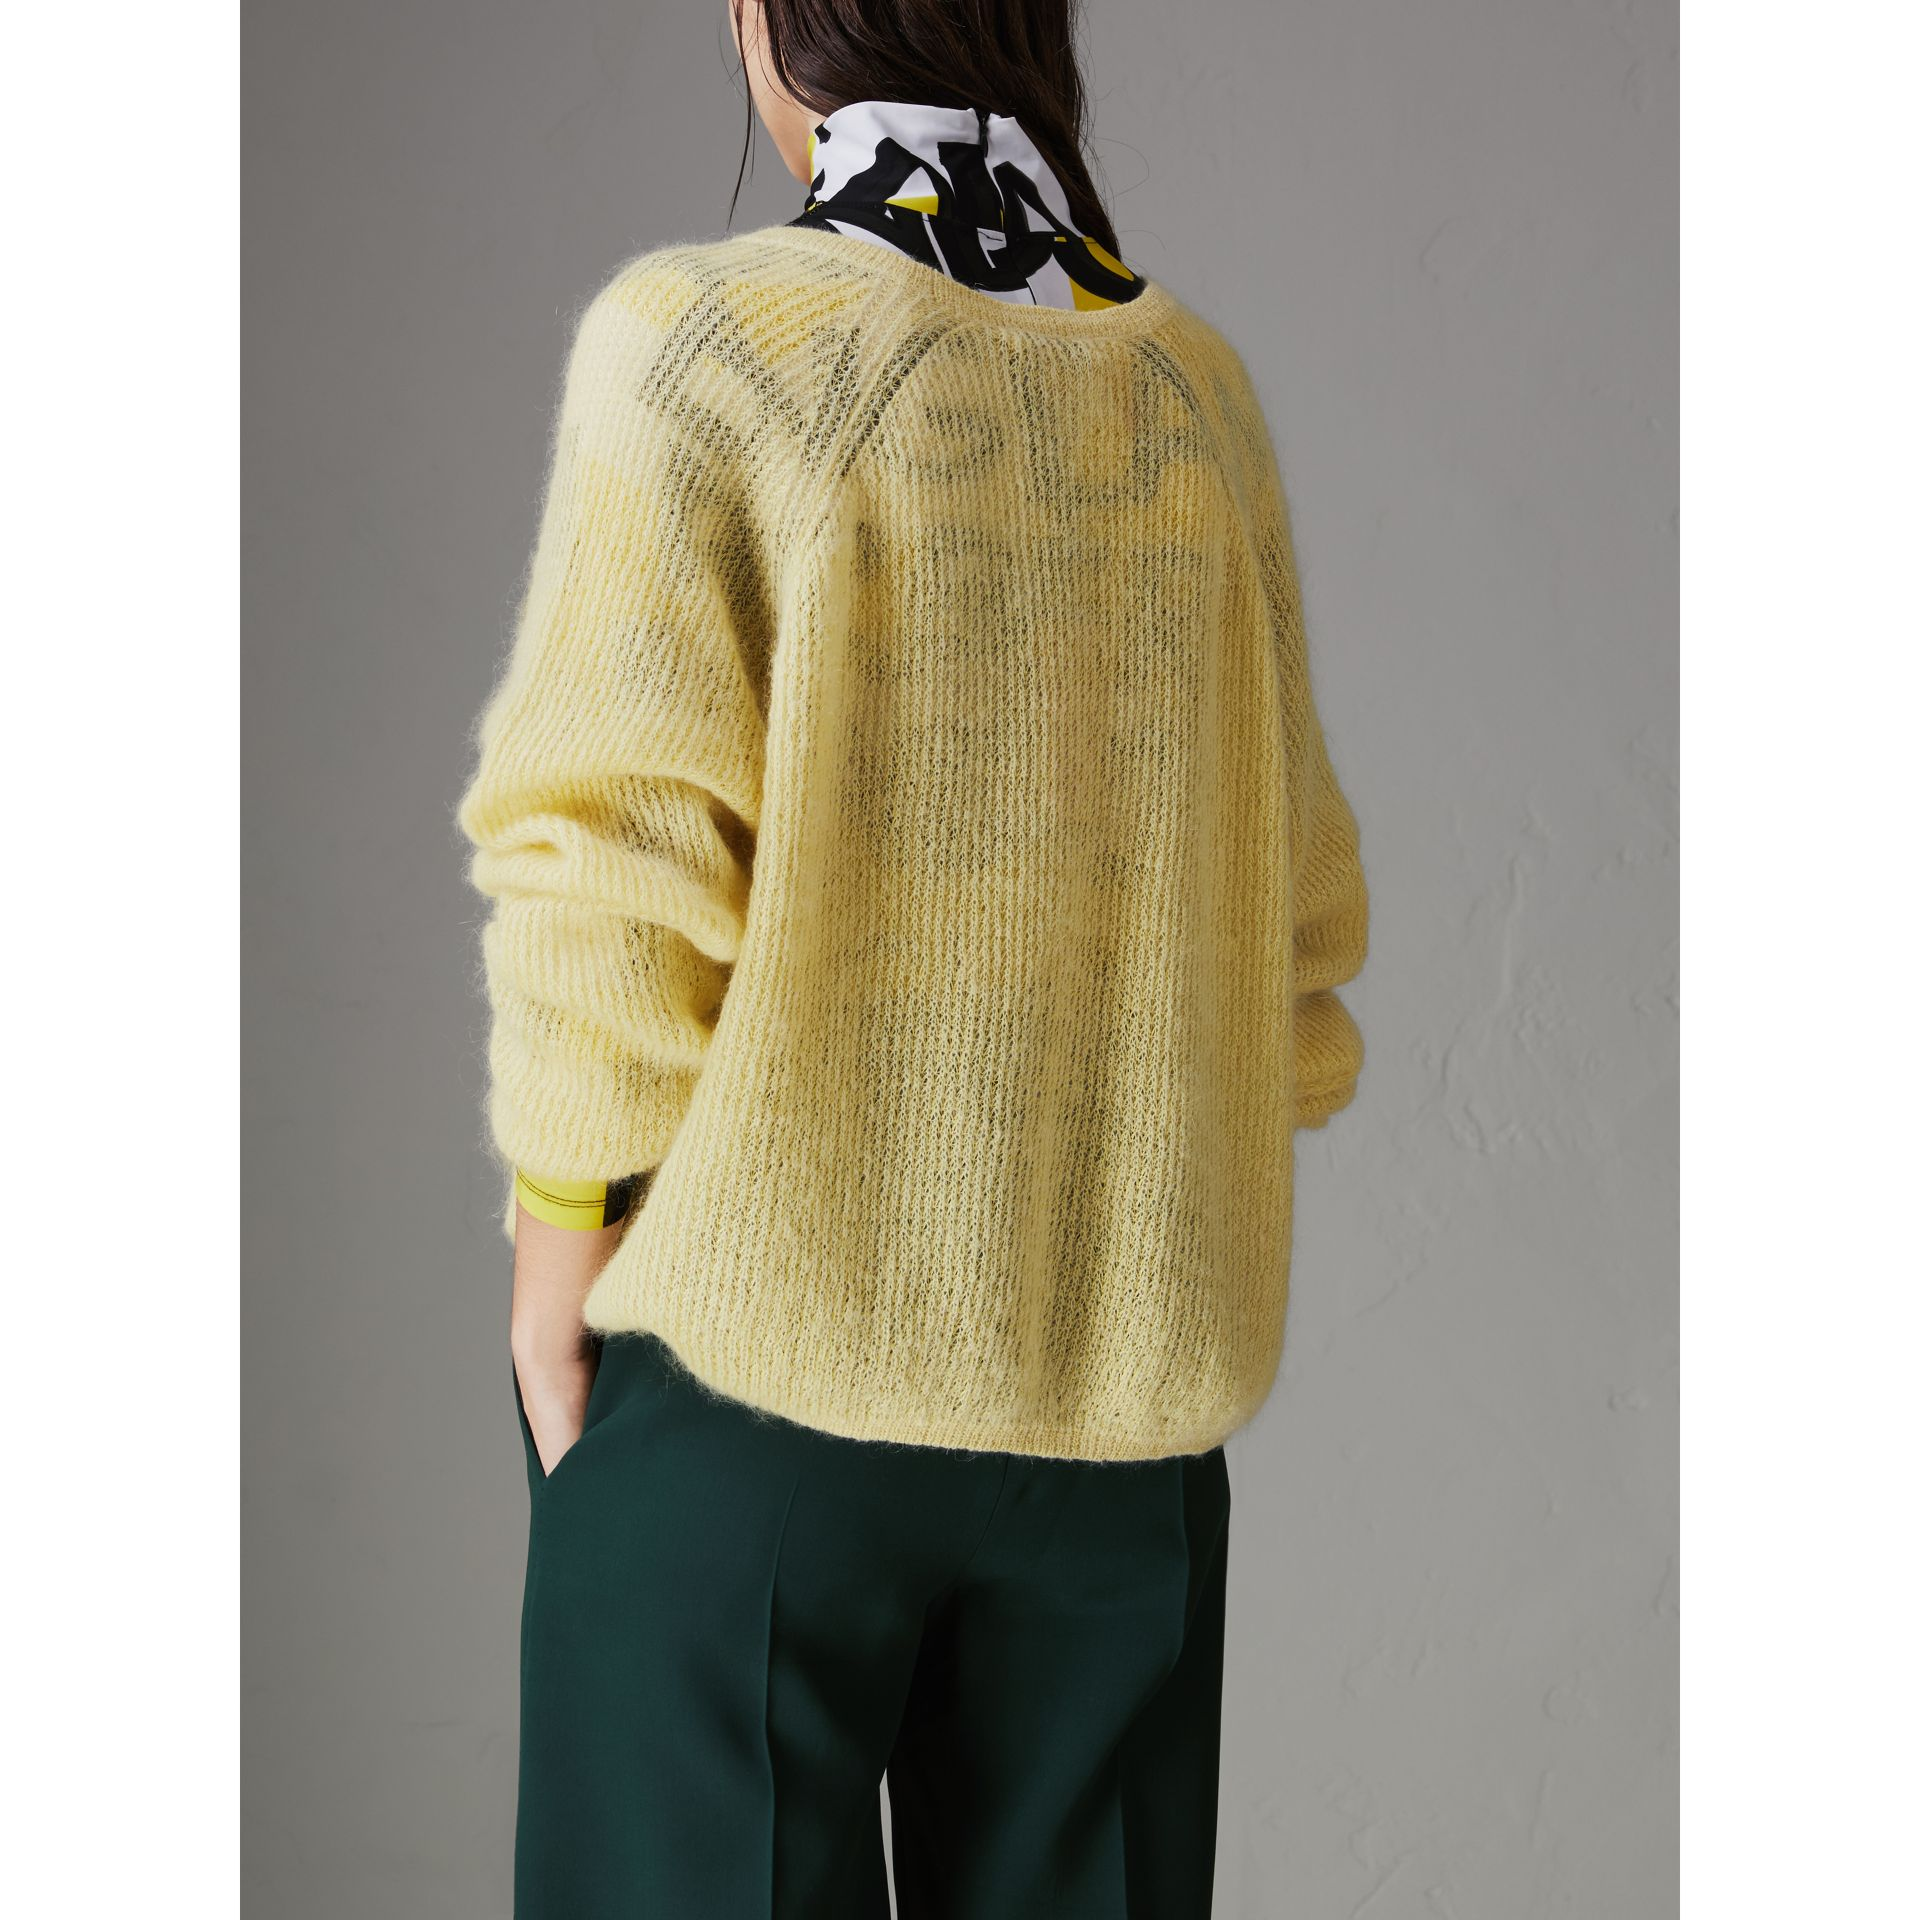 Mohair Silk Blend Sweater in Yellow Barley - Women | Burberry United Kingdom - gallery image 2